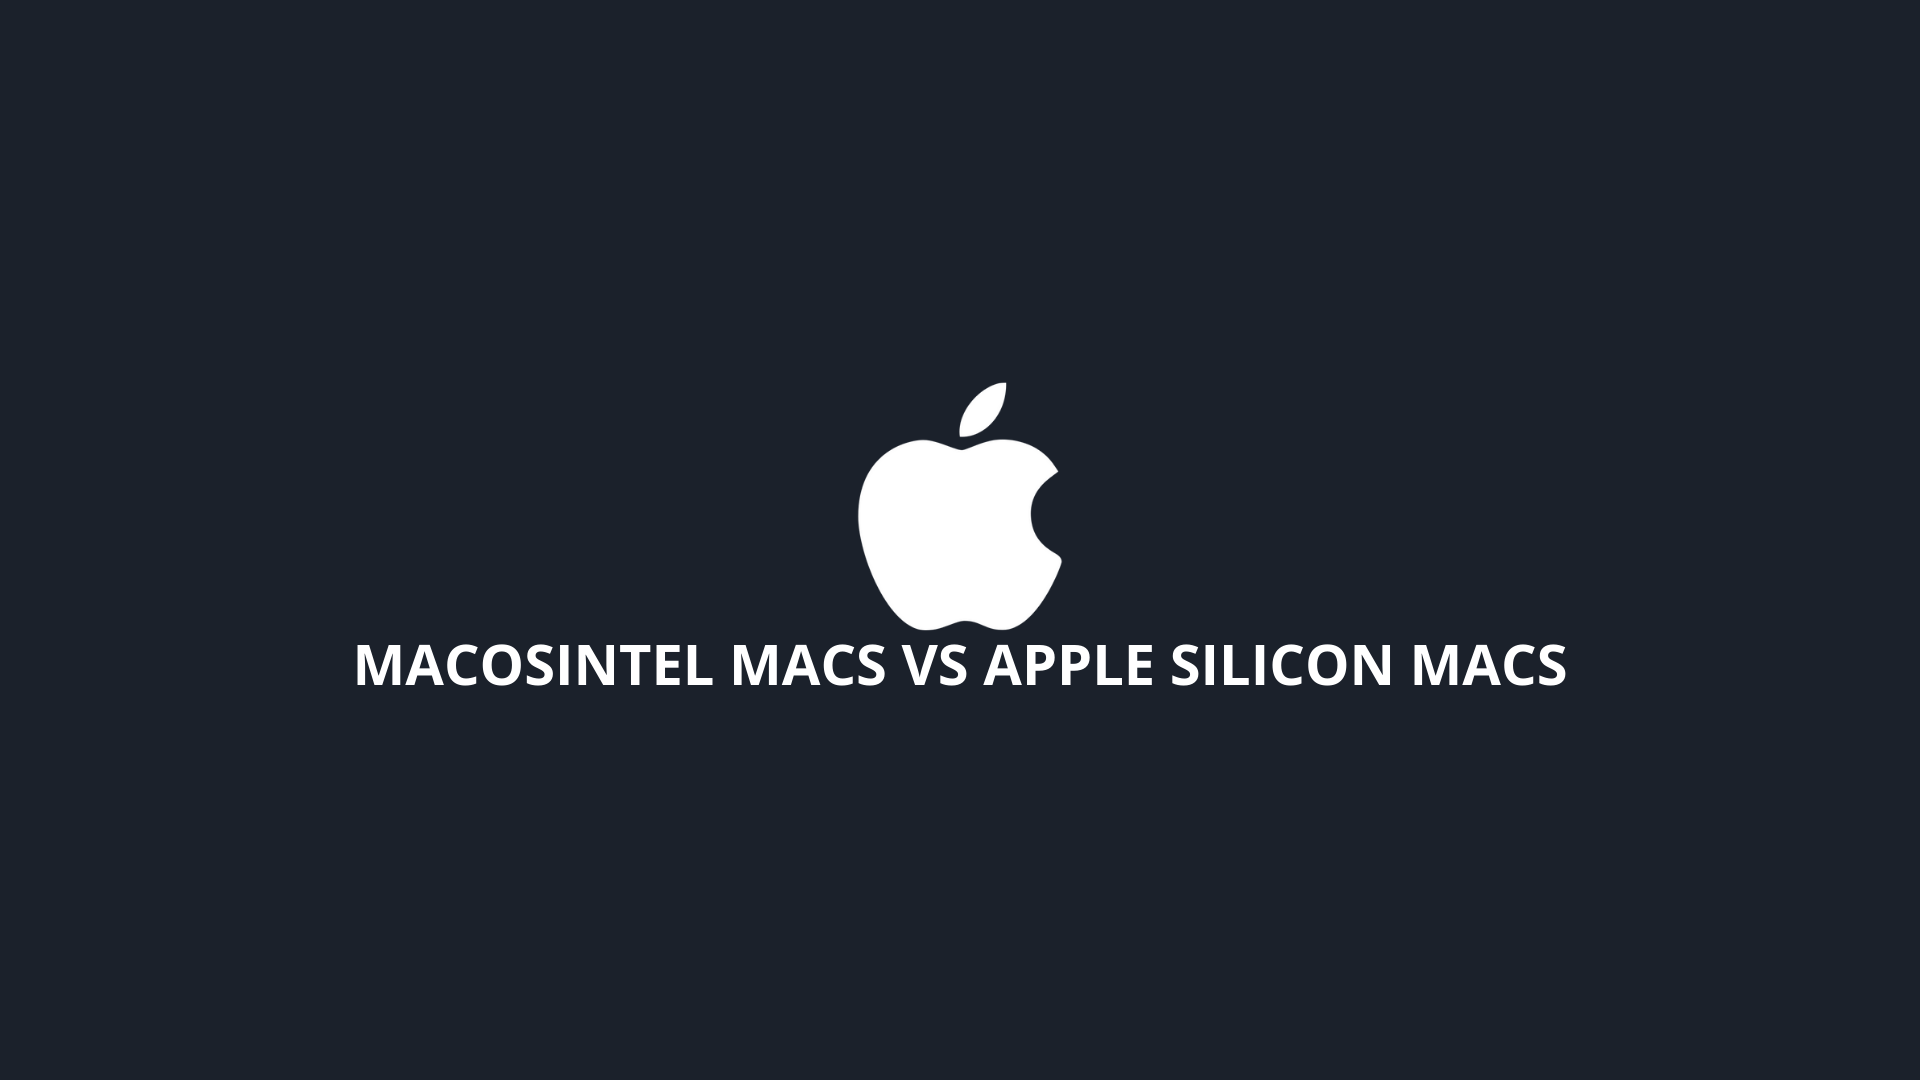 macOSIntel Macs vs Apple Silicon Macs